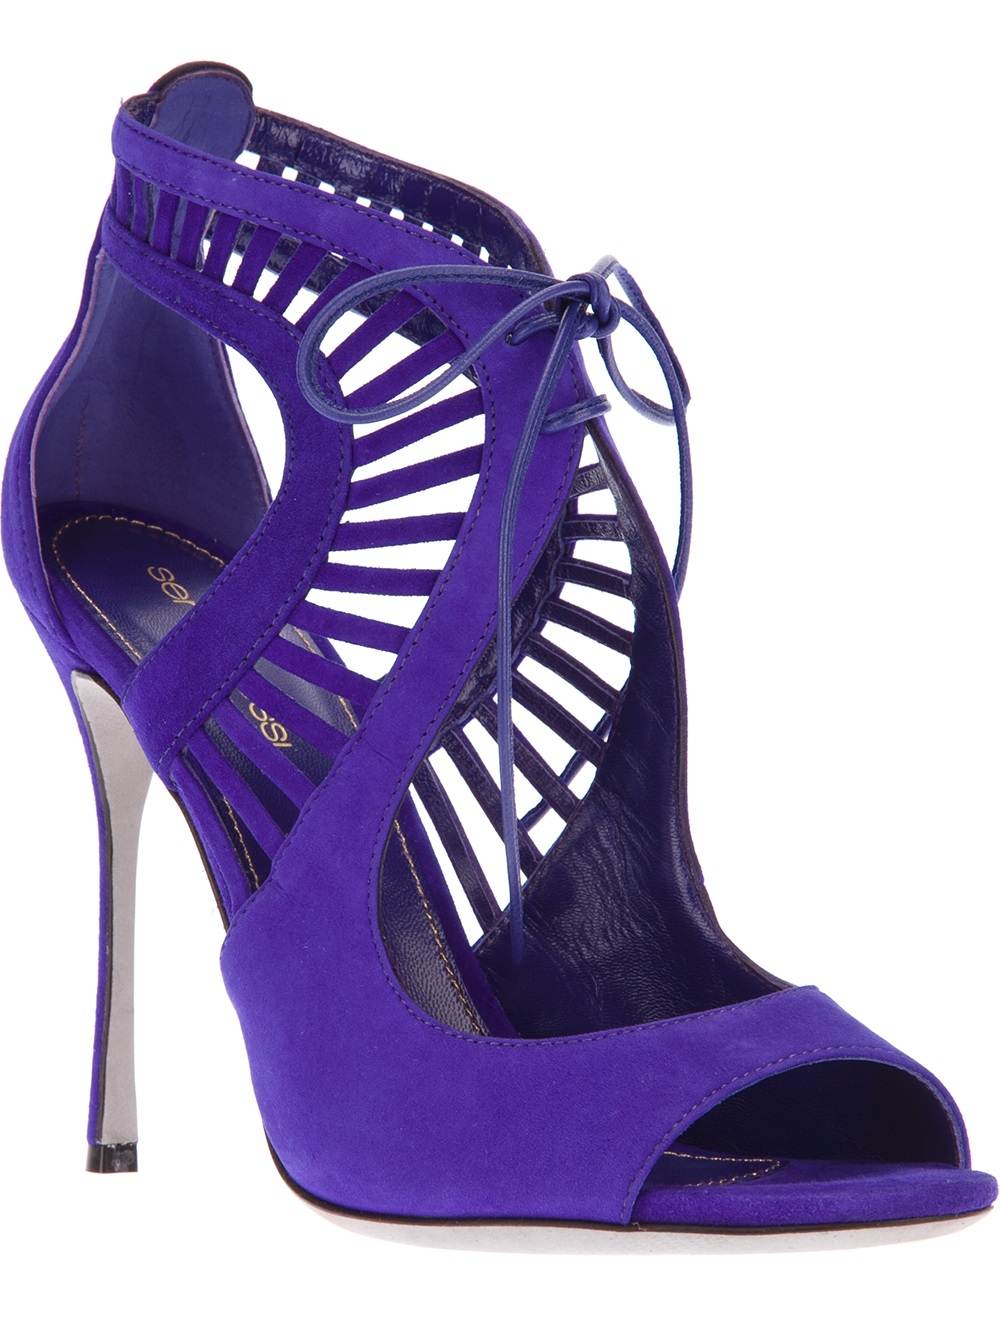 Lyst Sergio Rossi Gated Laceup Sandals In Purple